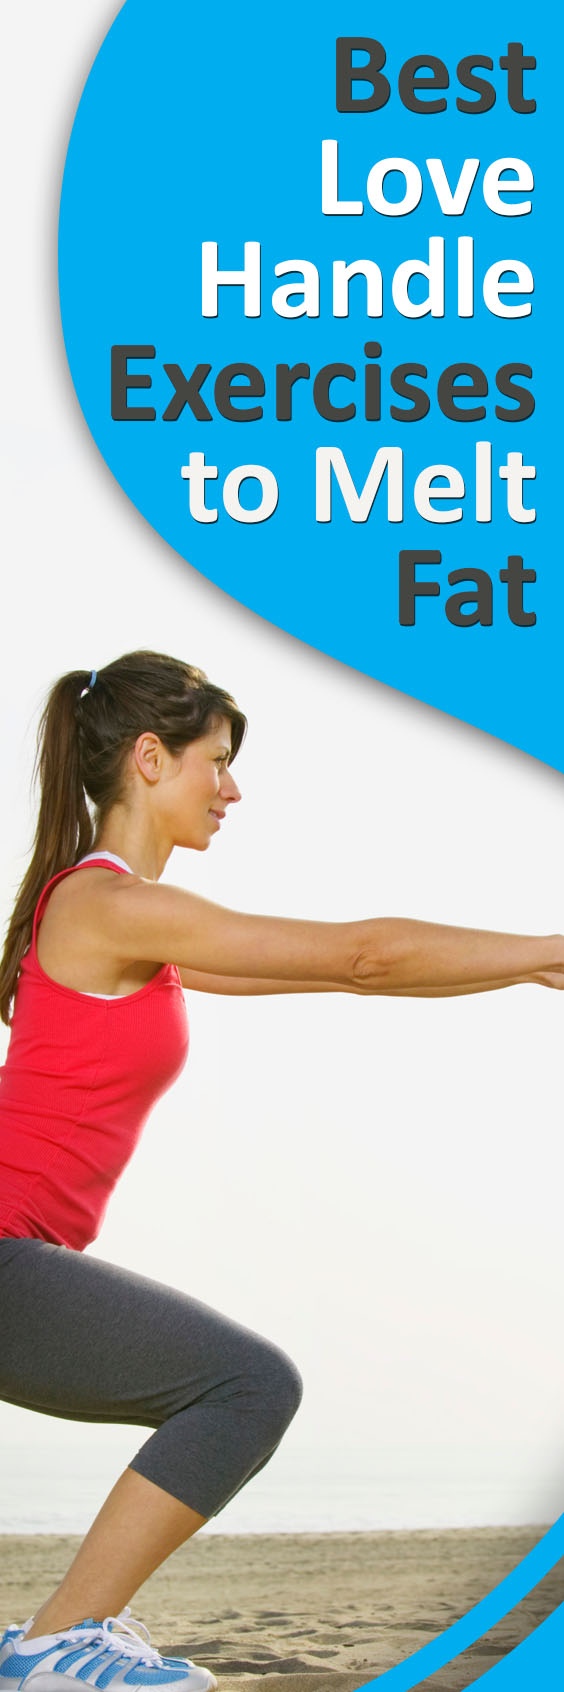 Best Love Handle Exercises to Melt Fat  Exercises Fat and Physique